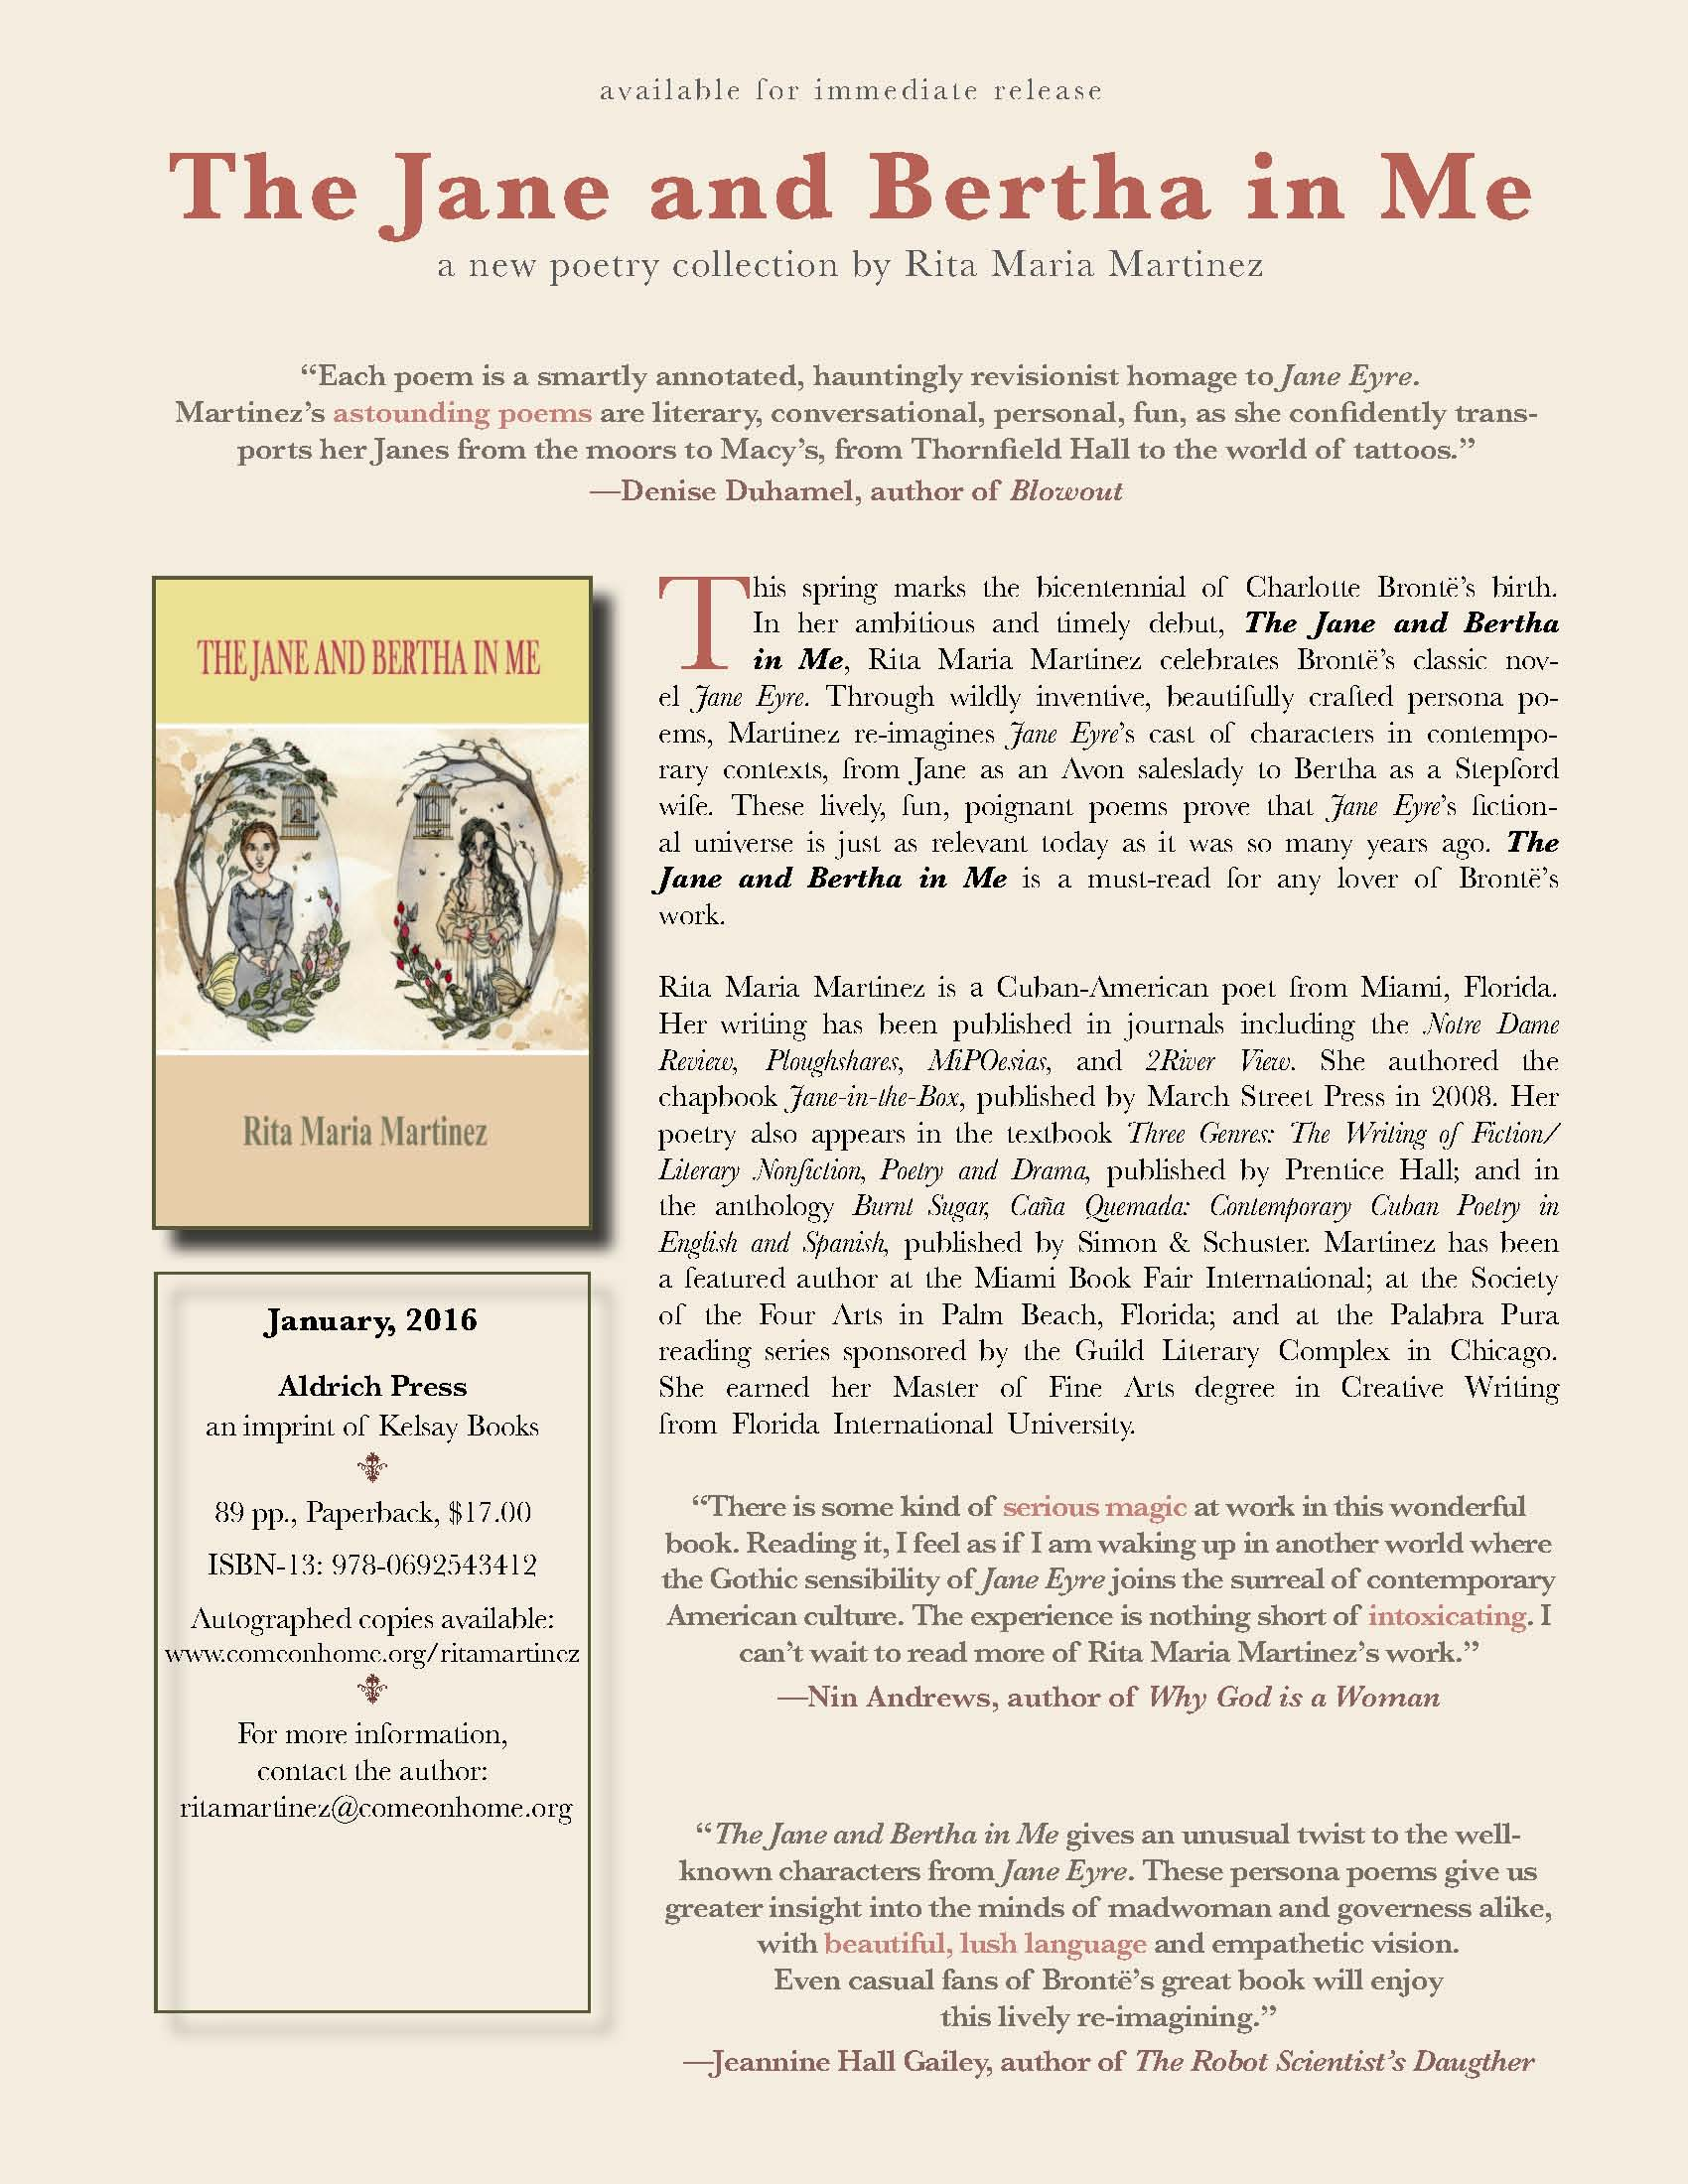 The_Jane_and_Bertha_in_Me_Press_Release_Page_1